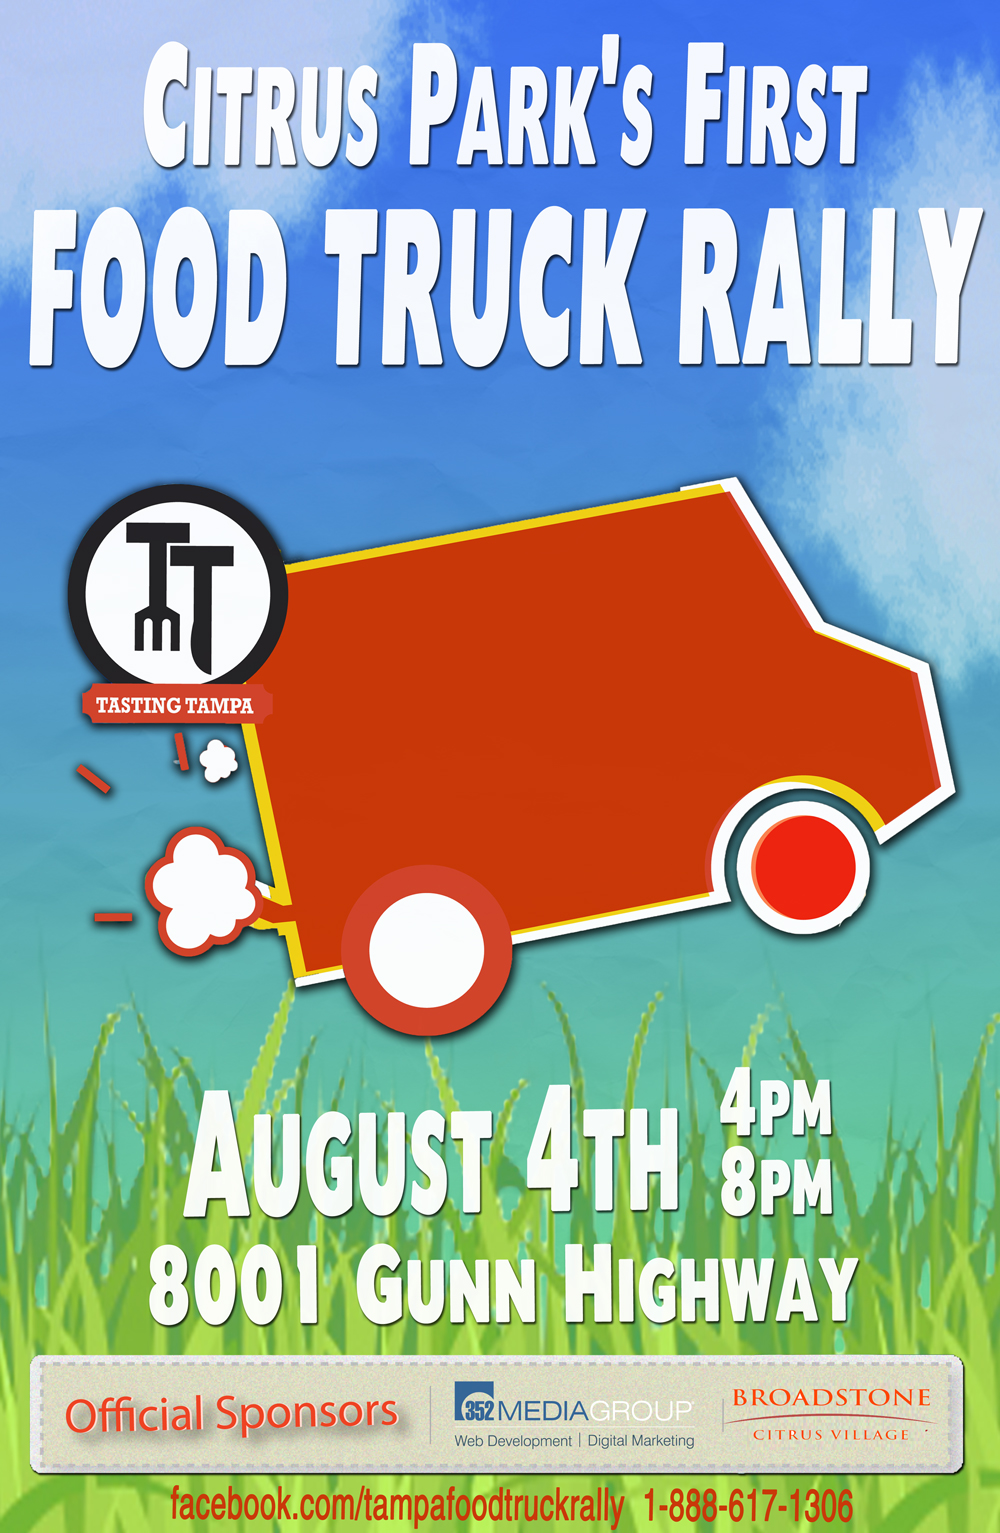 Citrus Park Food Truck Rally